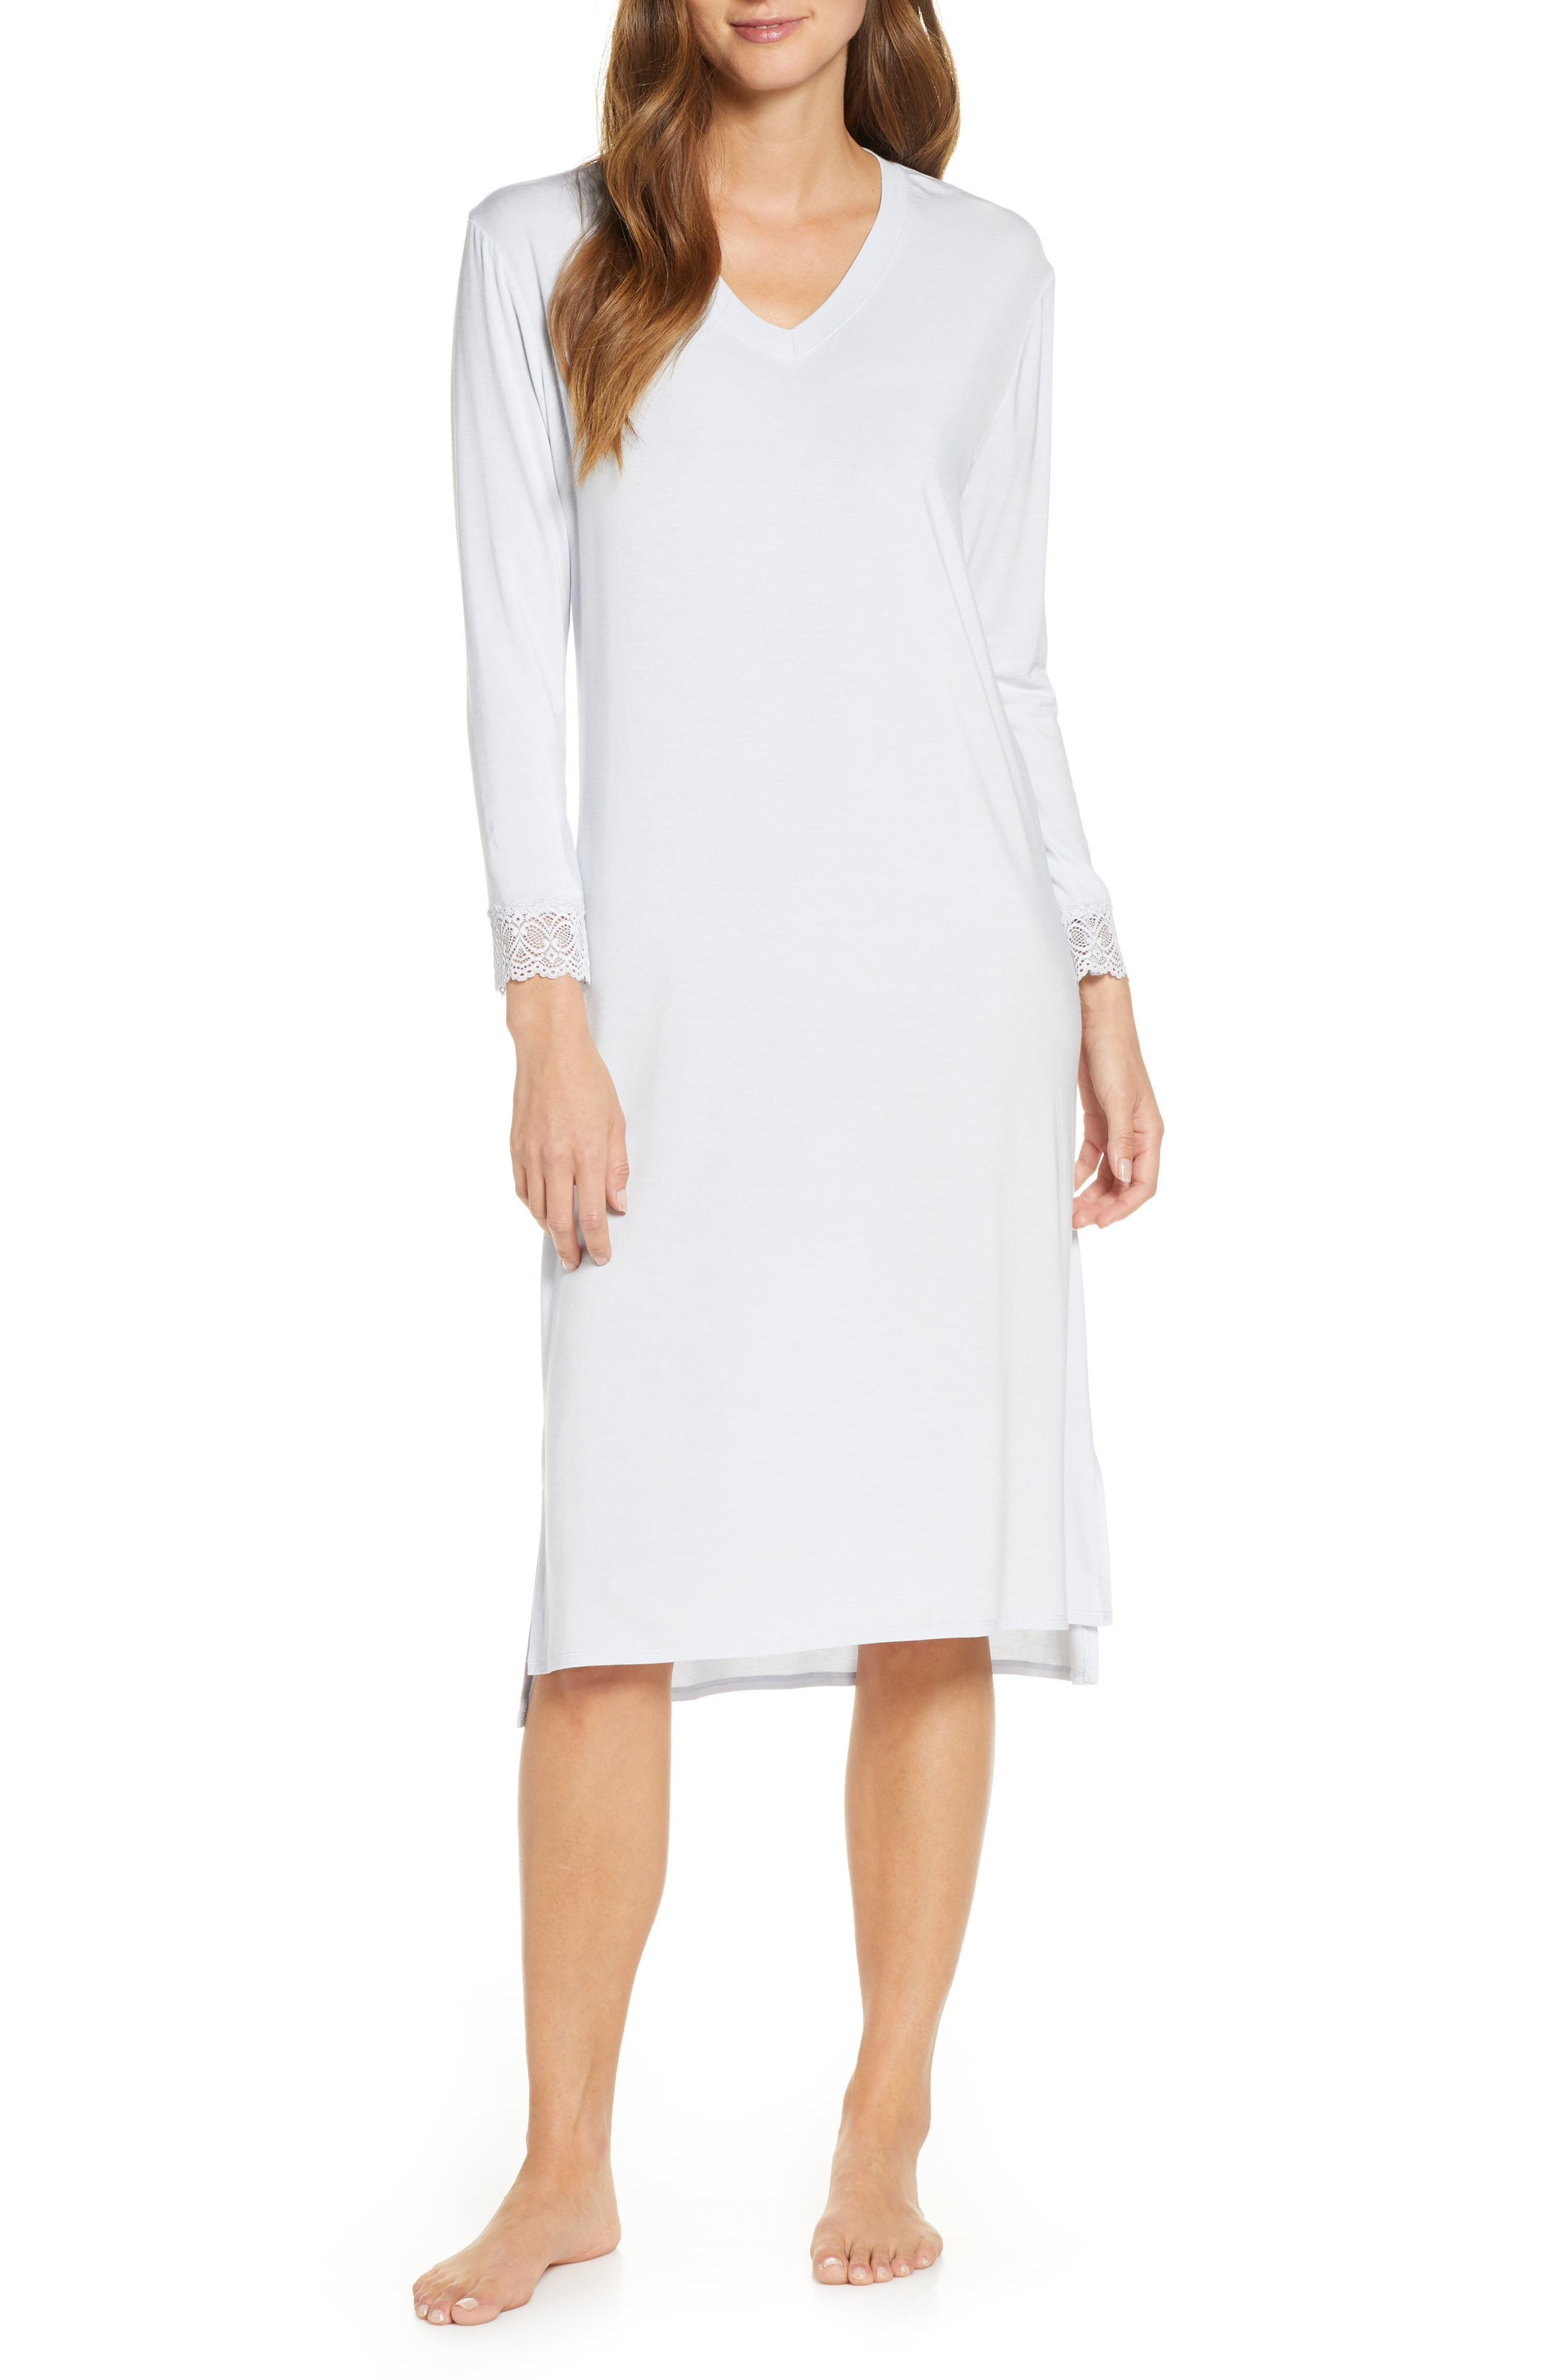 Rachel Parcell Knit Nightgown (Nordstrom Exclusive)